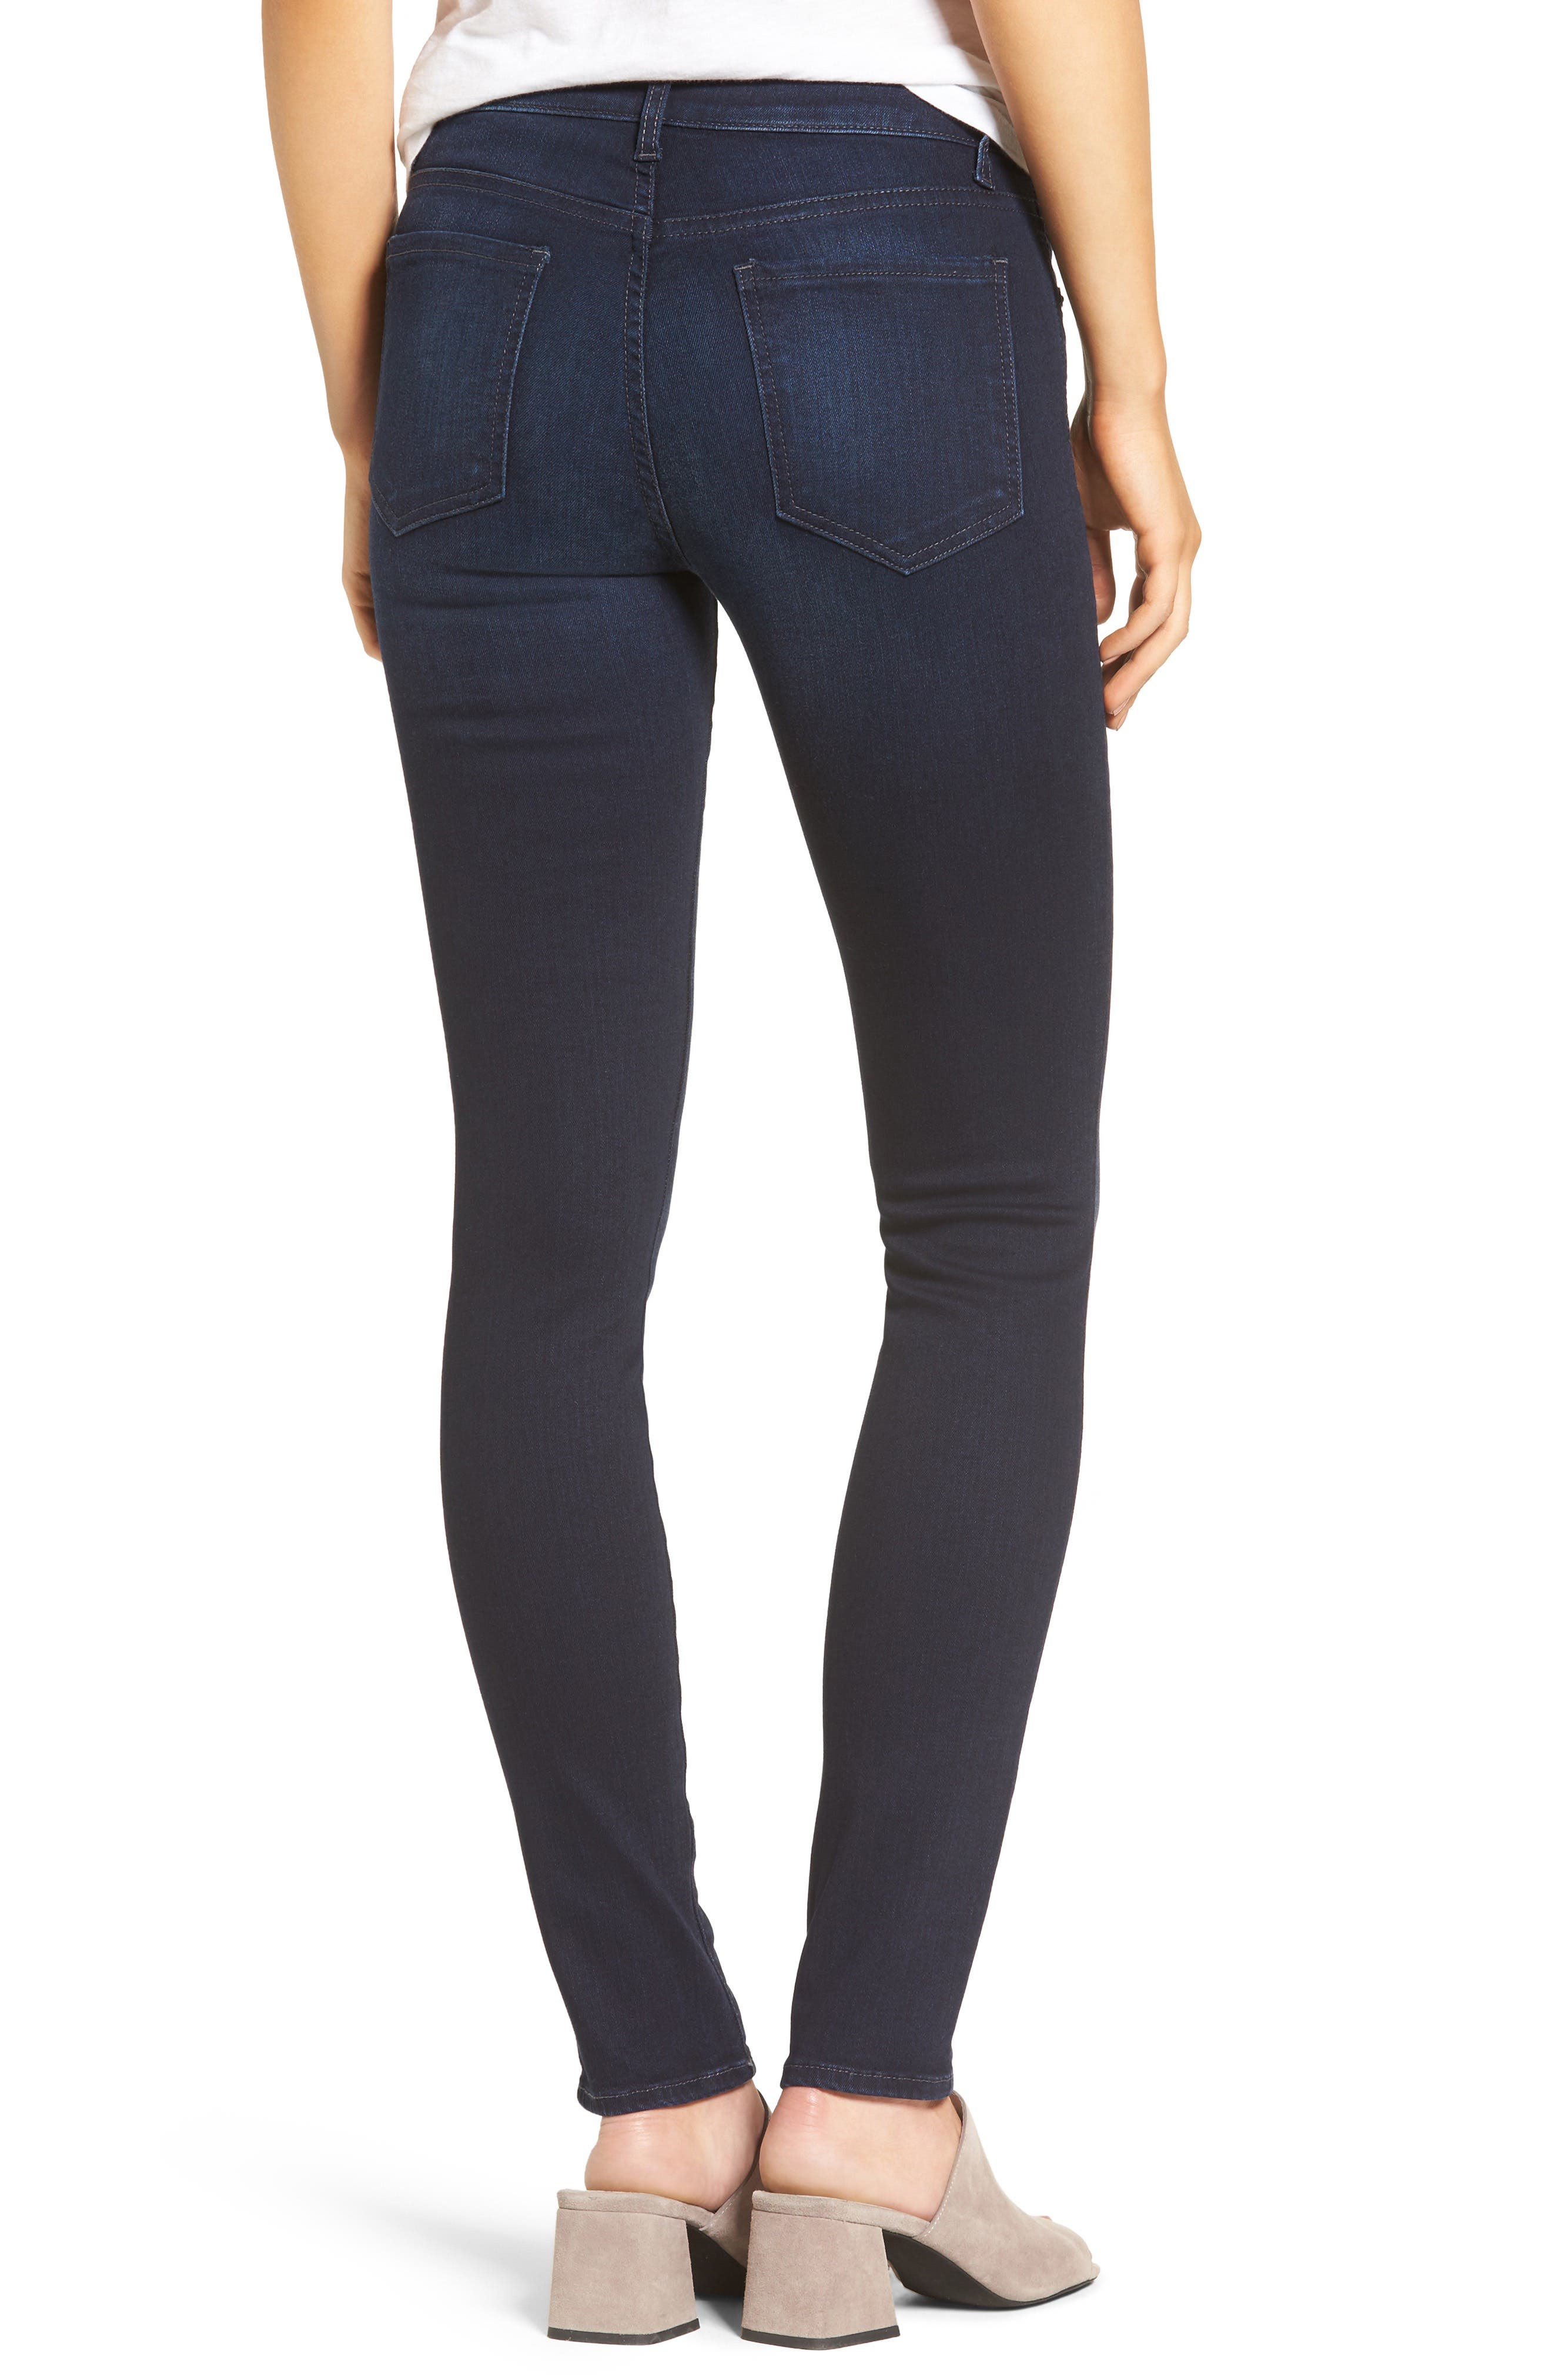 Diana Stretch Skinny Jeans,                             Alternate thumbnail 2, color,                             490